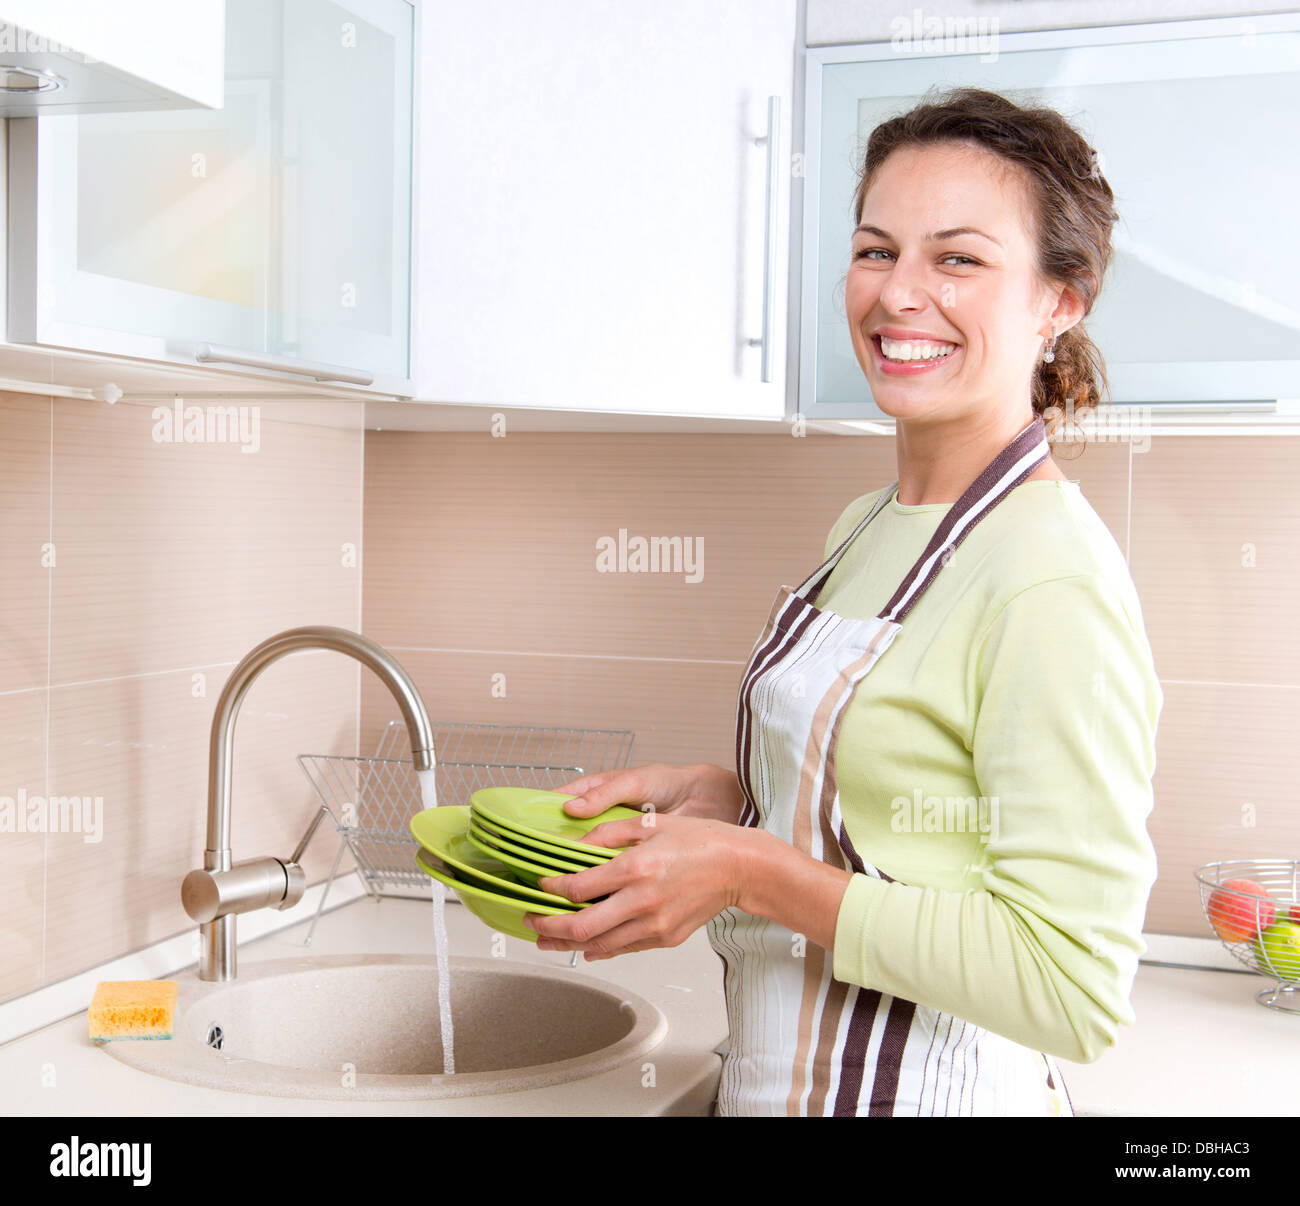 Dishwashing. Happy Young Woman Washing Dishes - Stock Image